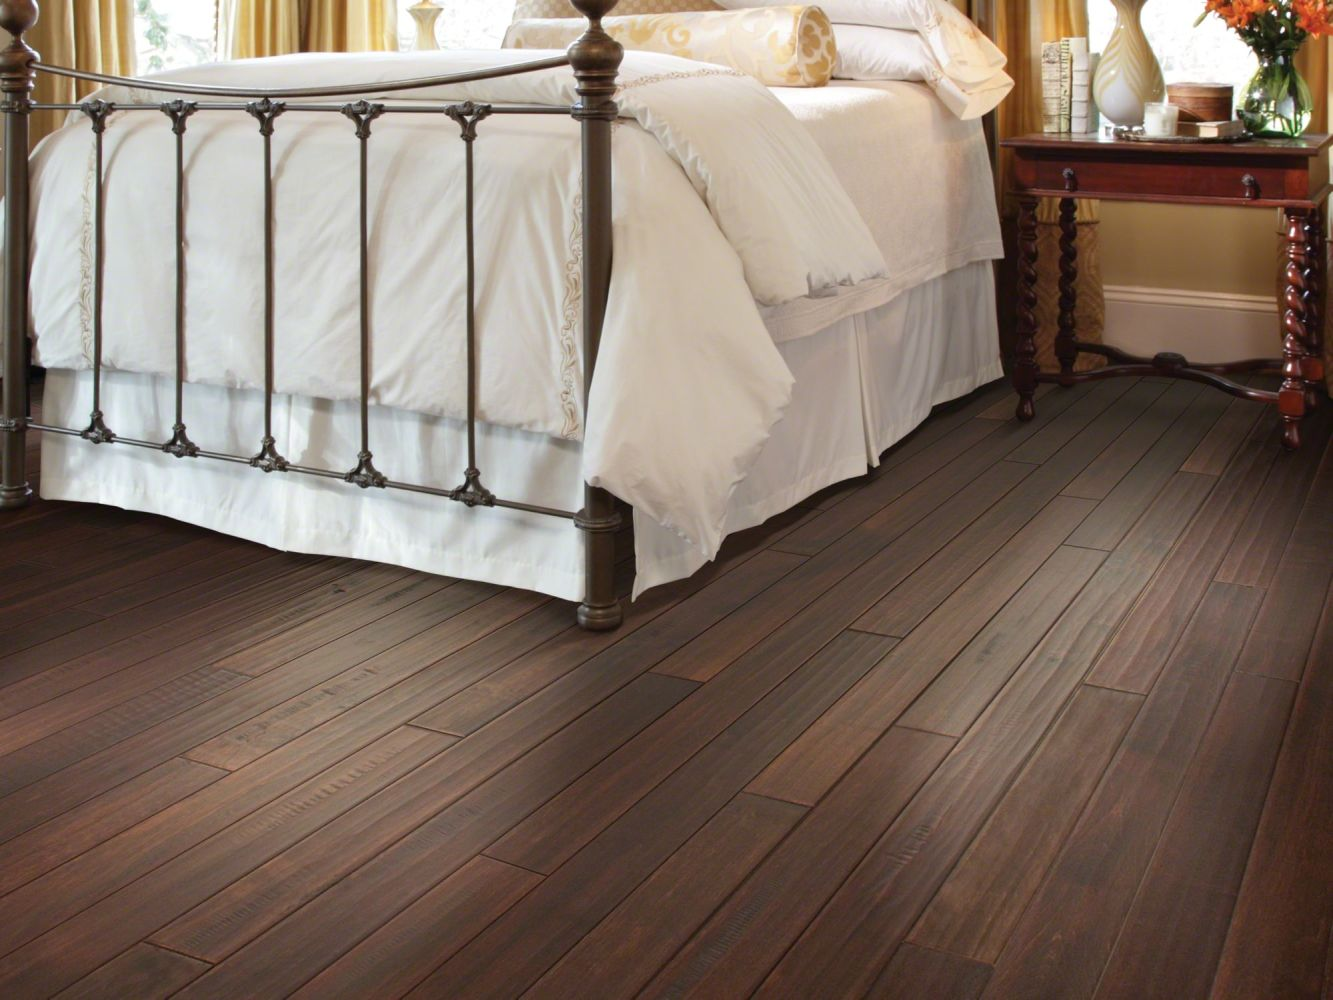 Shaw Floors Dr Horton Harbor Maple 3.25 Maple Syrup 00895_DR654